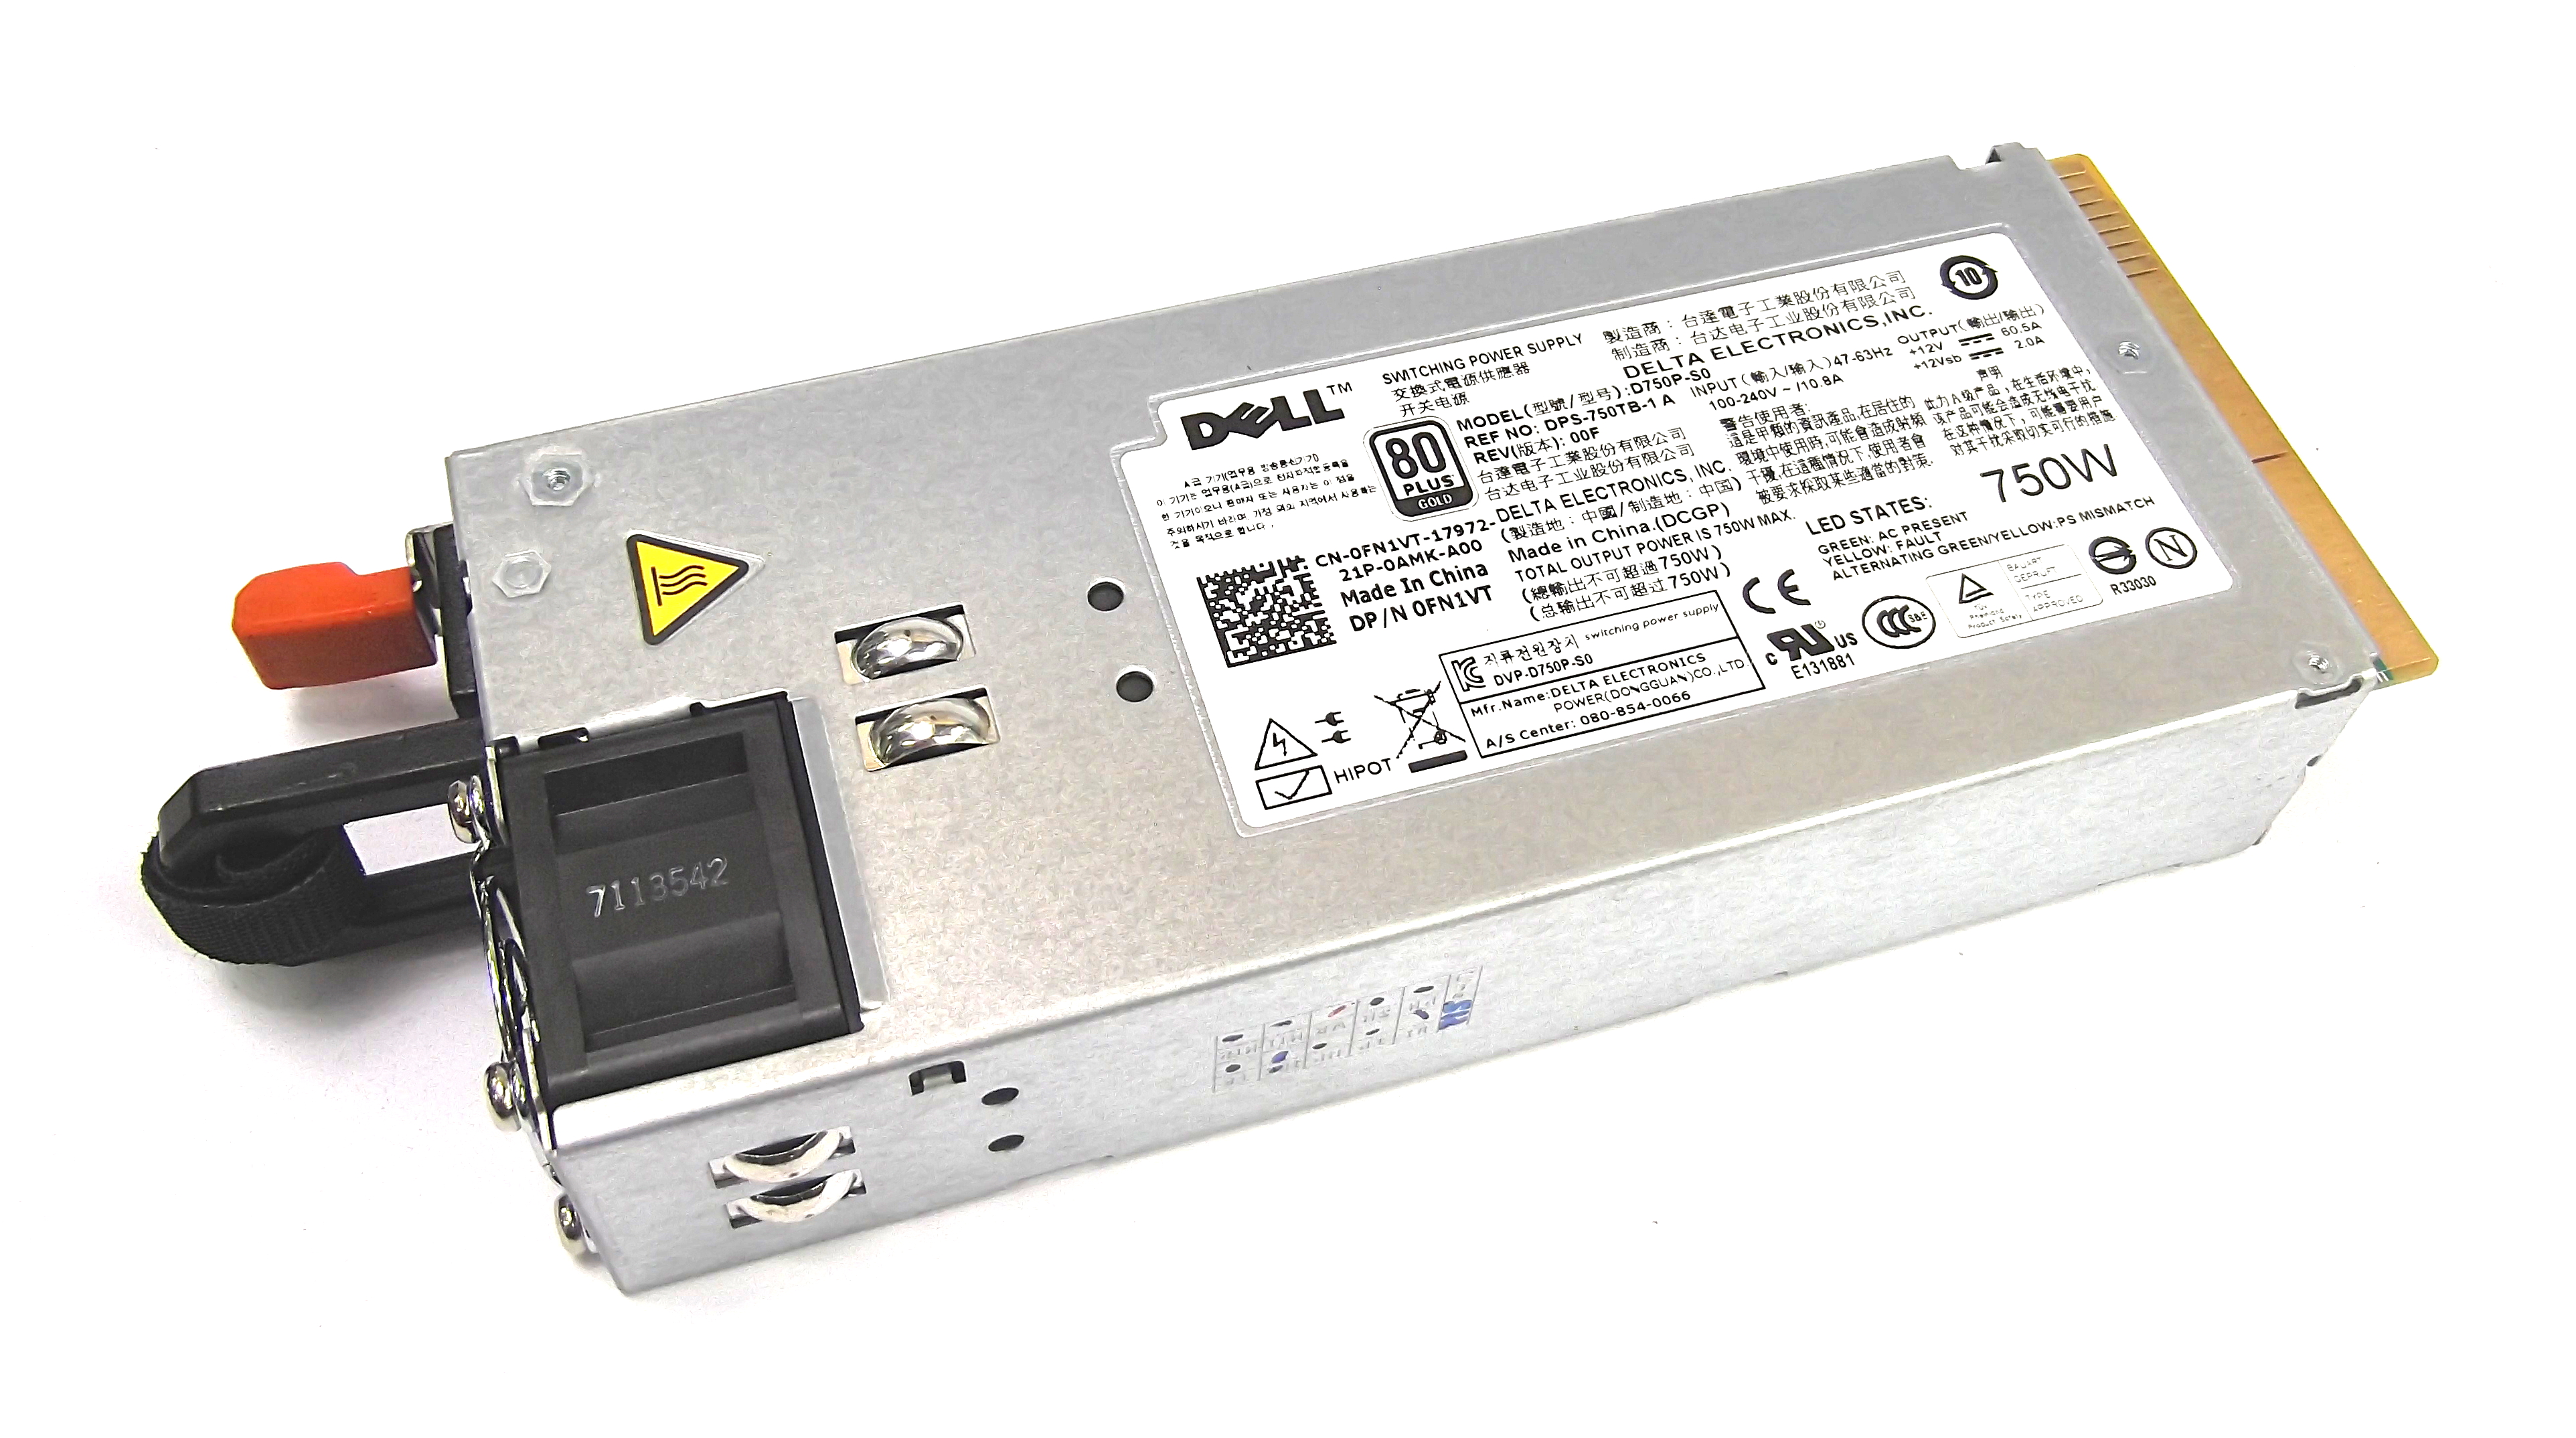 Dell FN1VT D750P-S0 750W Switching Power Supply For PowerEdge R510 Server